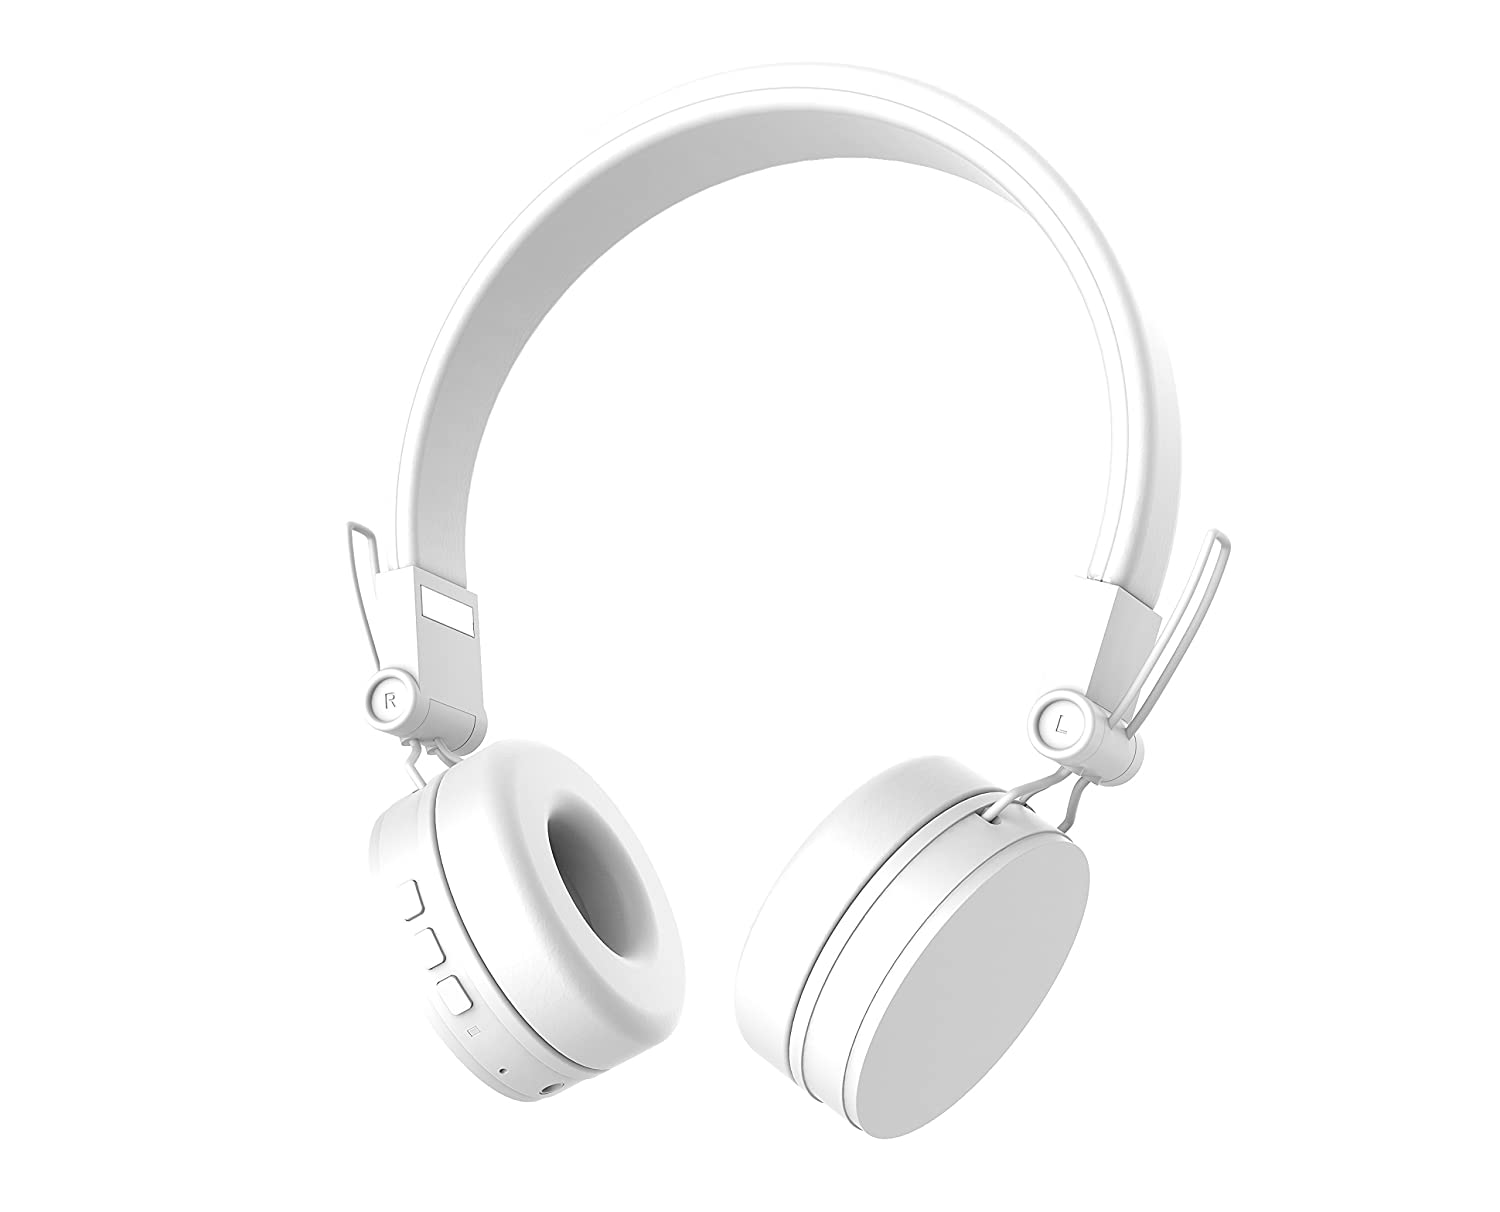 e2b2bd872 DeFunc GO Bluetooth Wireless Headphones with Touch Control - White